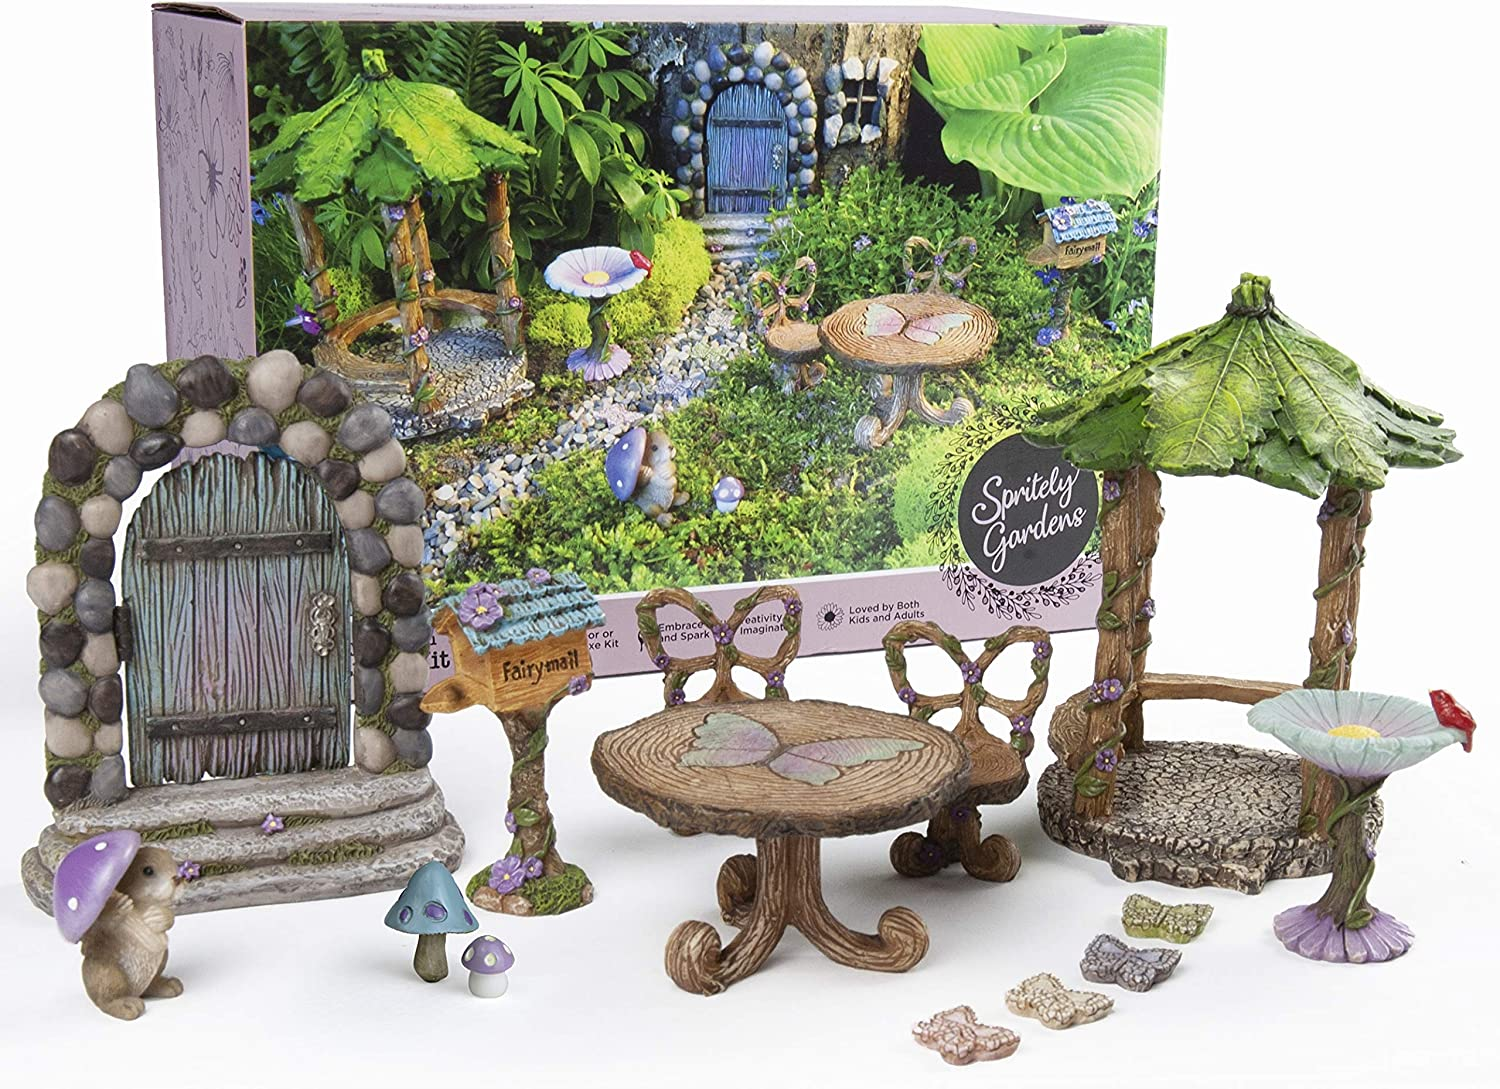 Spritely Gardens Deluxe Fairy Garden Kit with Accessories Indoor